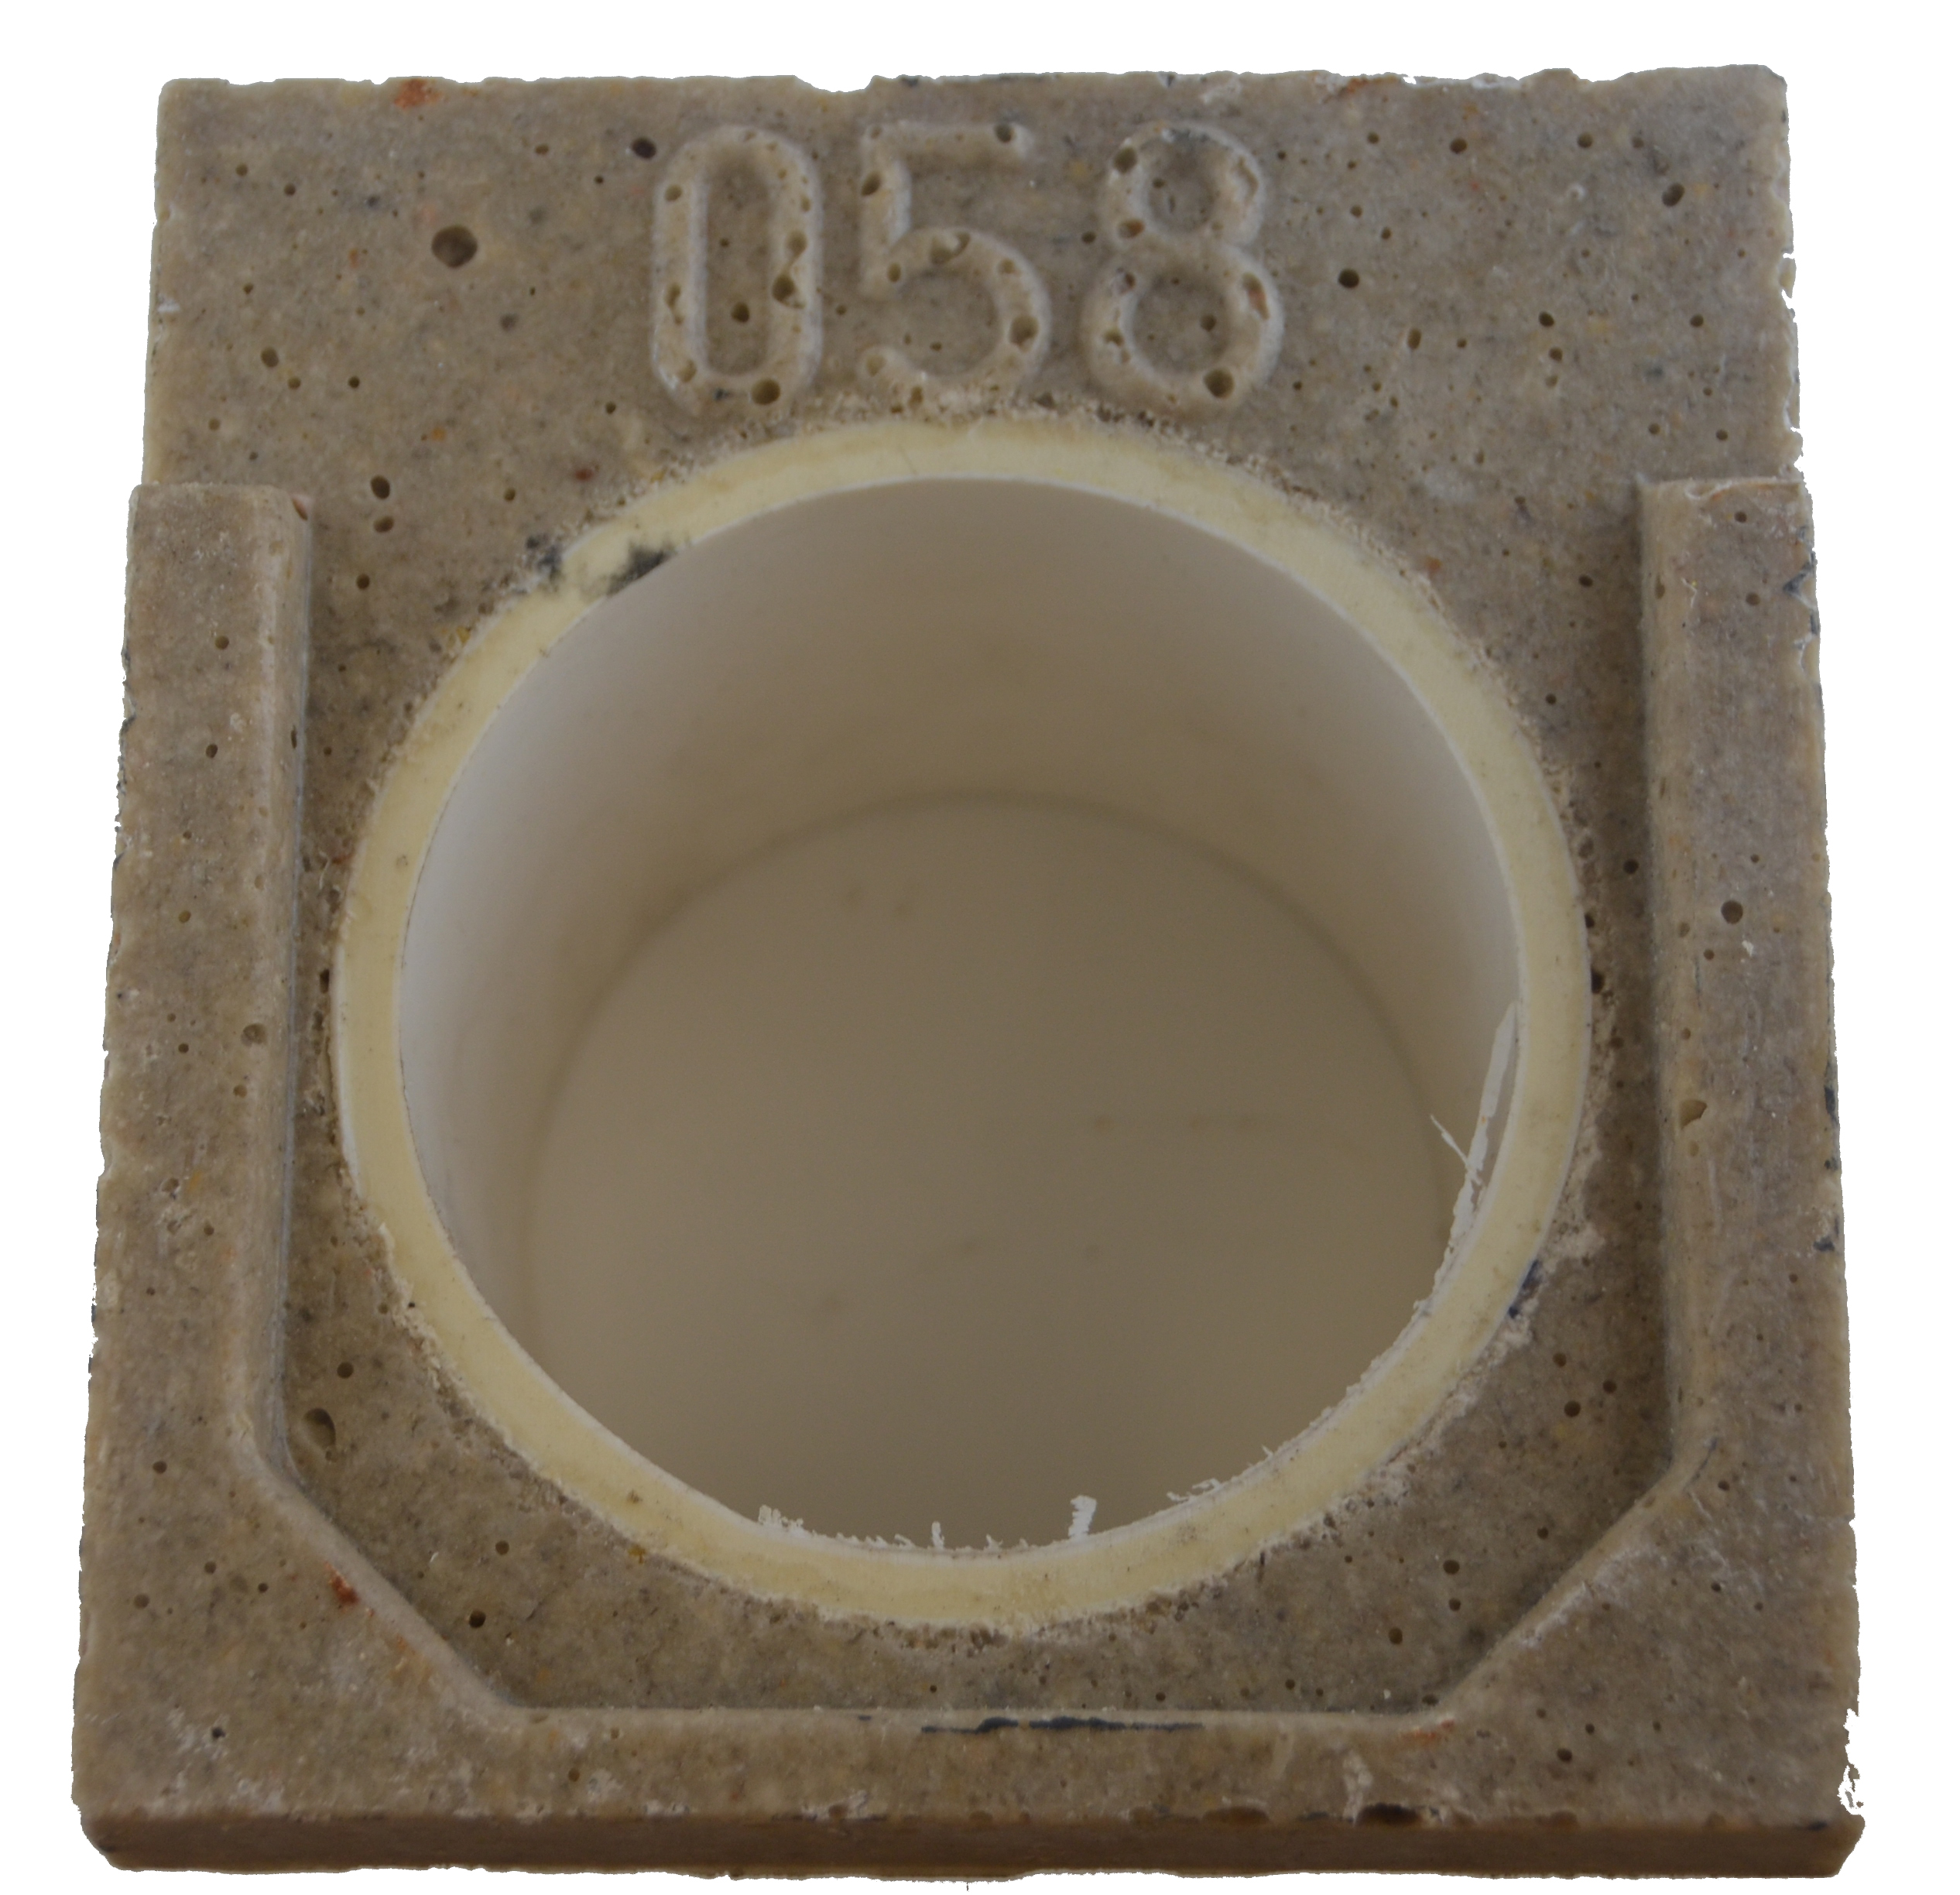 Polydrain Outlet Plate